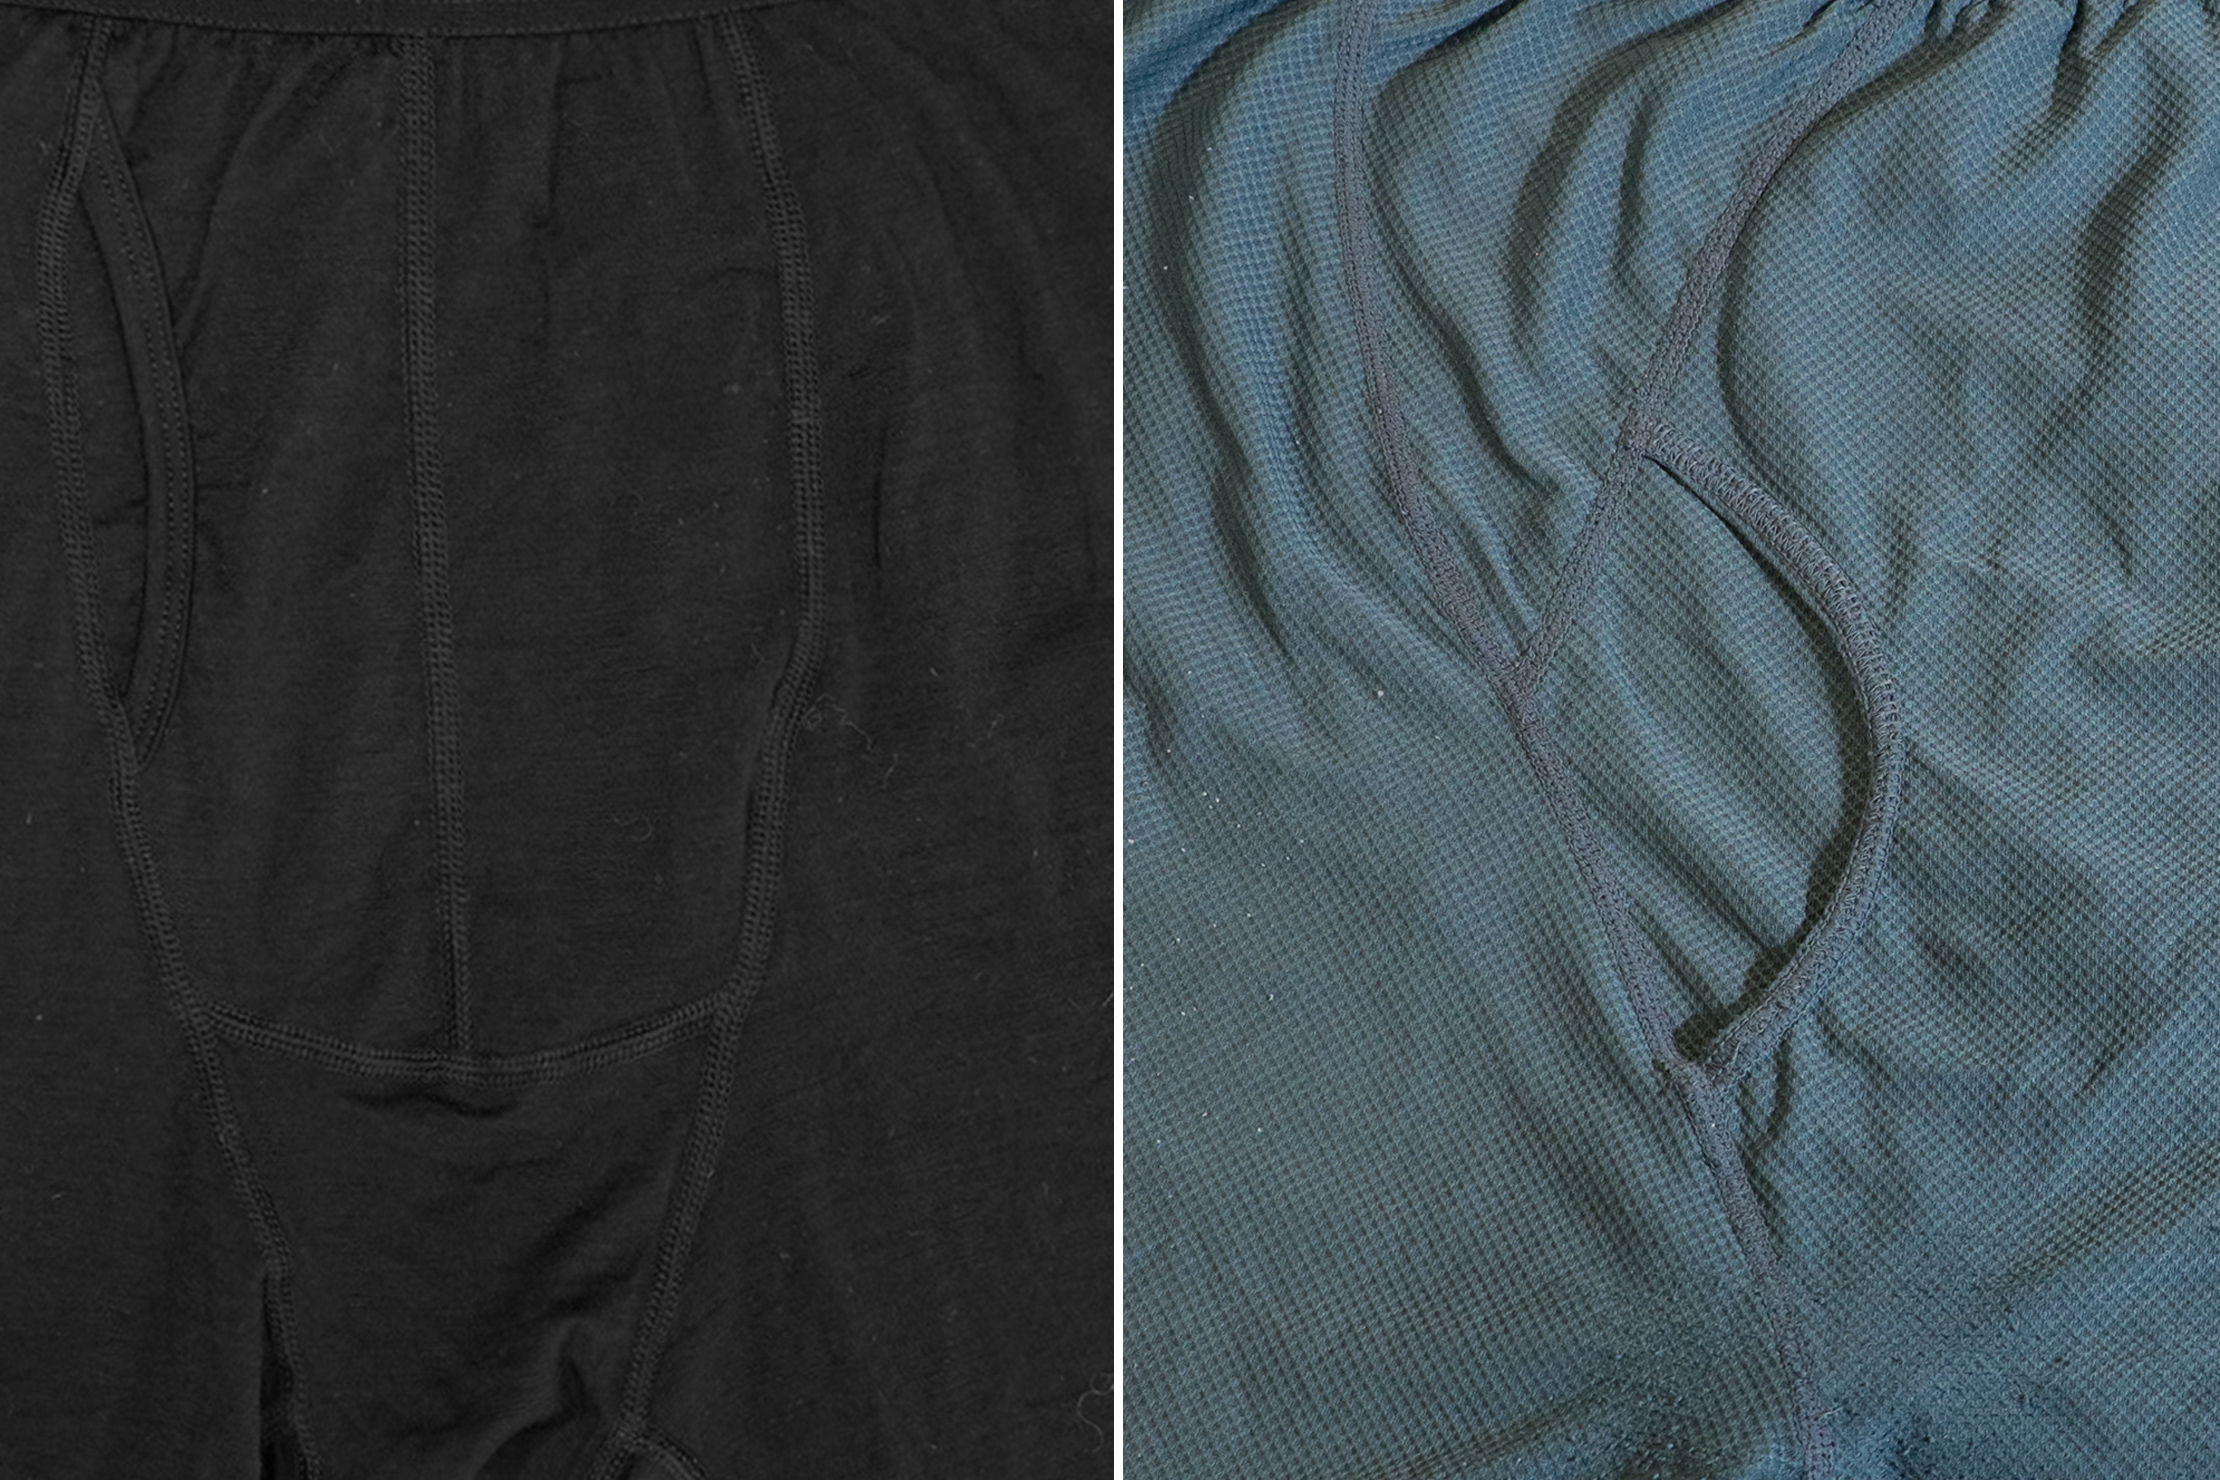 Woolx Reaction Boxer Brief Merino Wool (left) And ExOfficio Boxer Brief (Give-N-Go) (right)